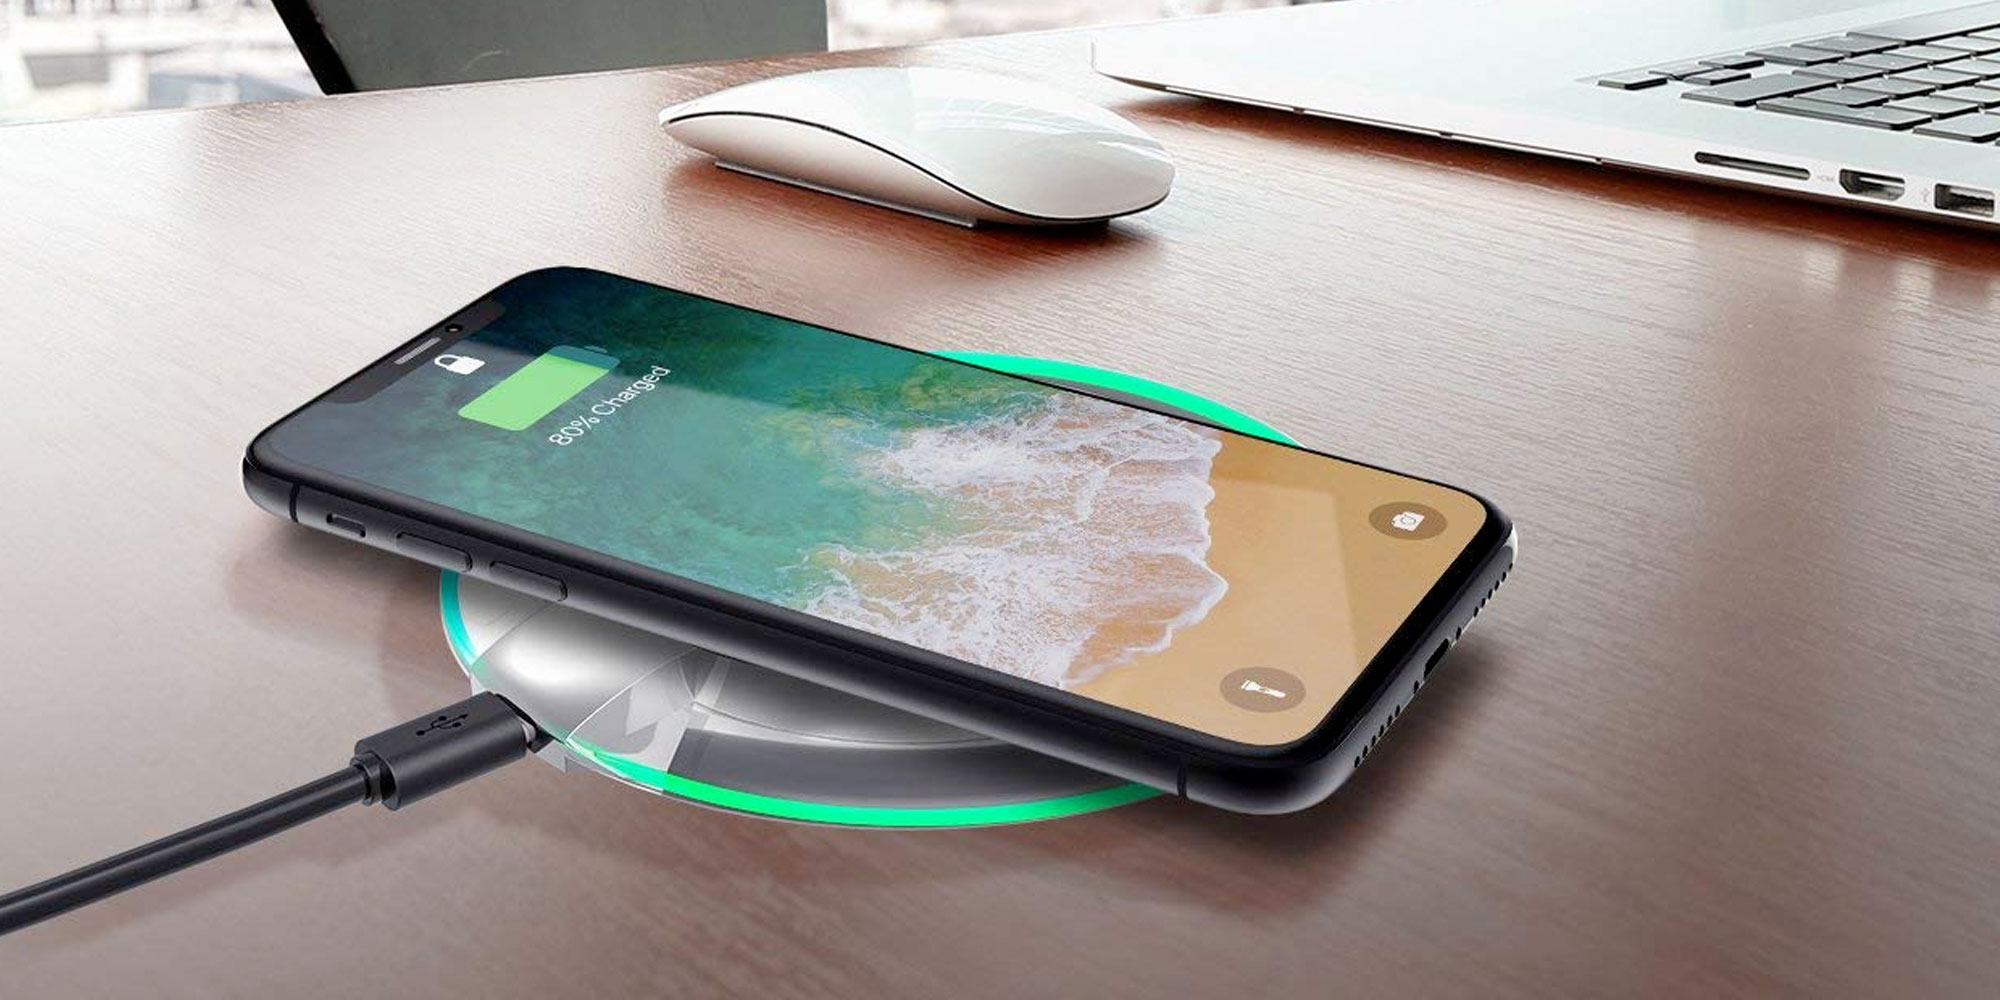 Outfit your entire home with these 7.5/10W Qi Charging Pads for $10 Prime shipped